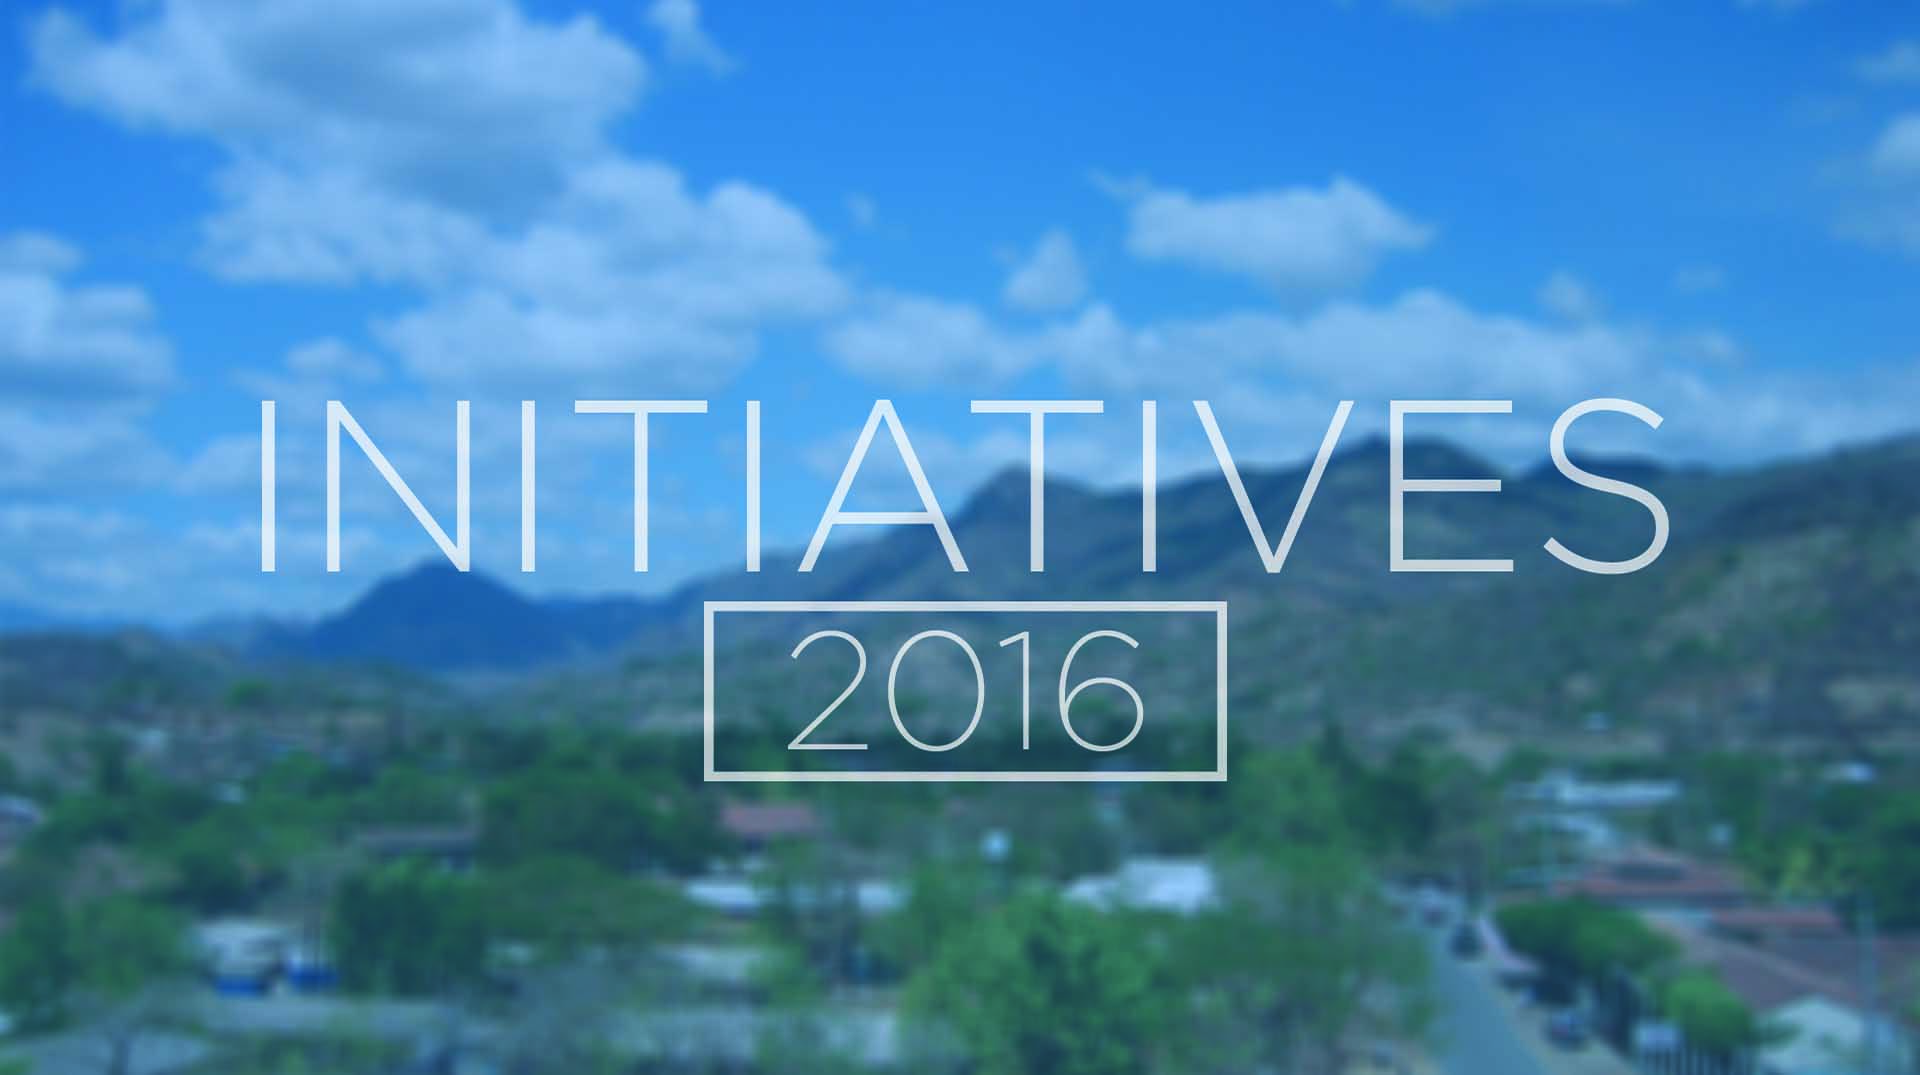 2015 GLOBAL INITIATIVES   Make a difference in Jesus' name this next year on one of our Short Term Trips. Make plans now to go on a faith adventure to make Jesus known. To learn more details and to sign-up go  HERE .  el Salvador - Compassion - June 18-24 - $2,400   A deposit of $300 is due by February 7, 2016